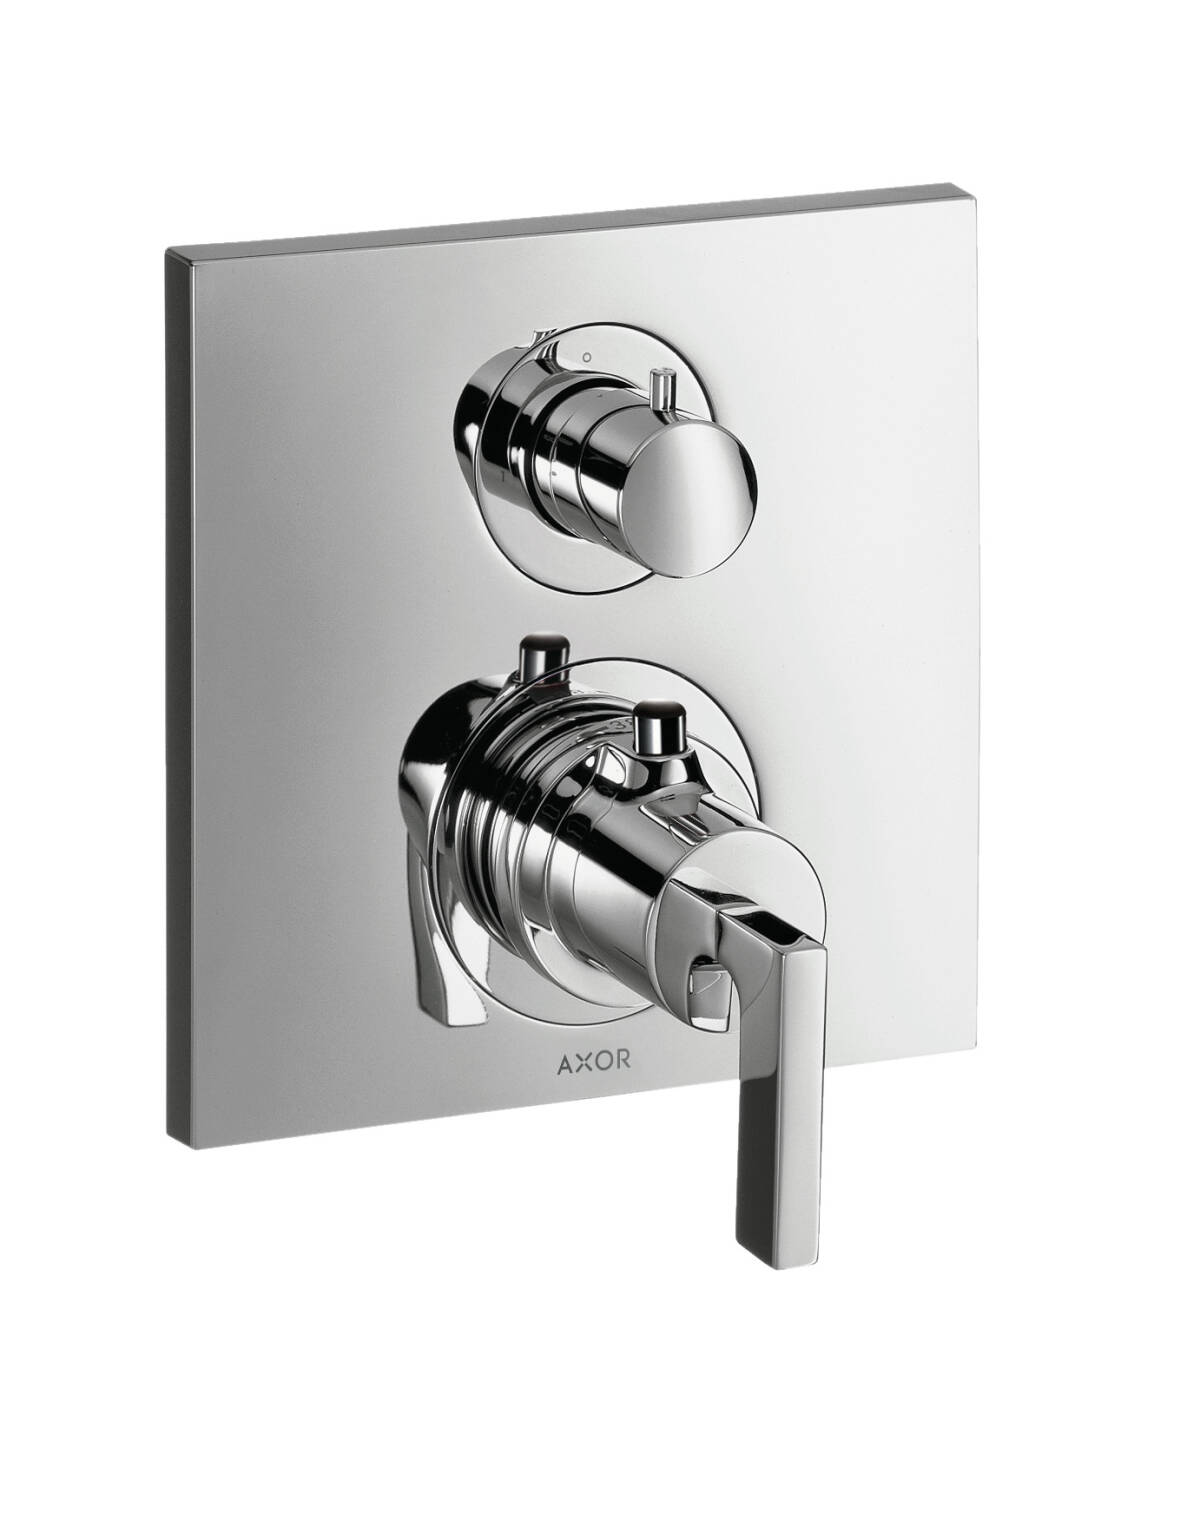 Thermostatic mixer for concealed installation with shut-off/ diverter valve and lever handle, Chrome, 39720000